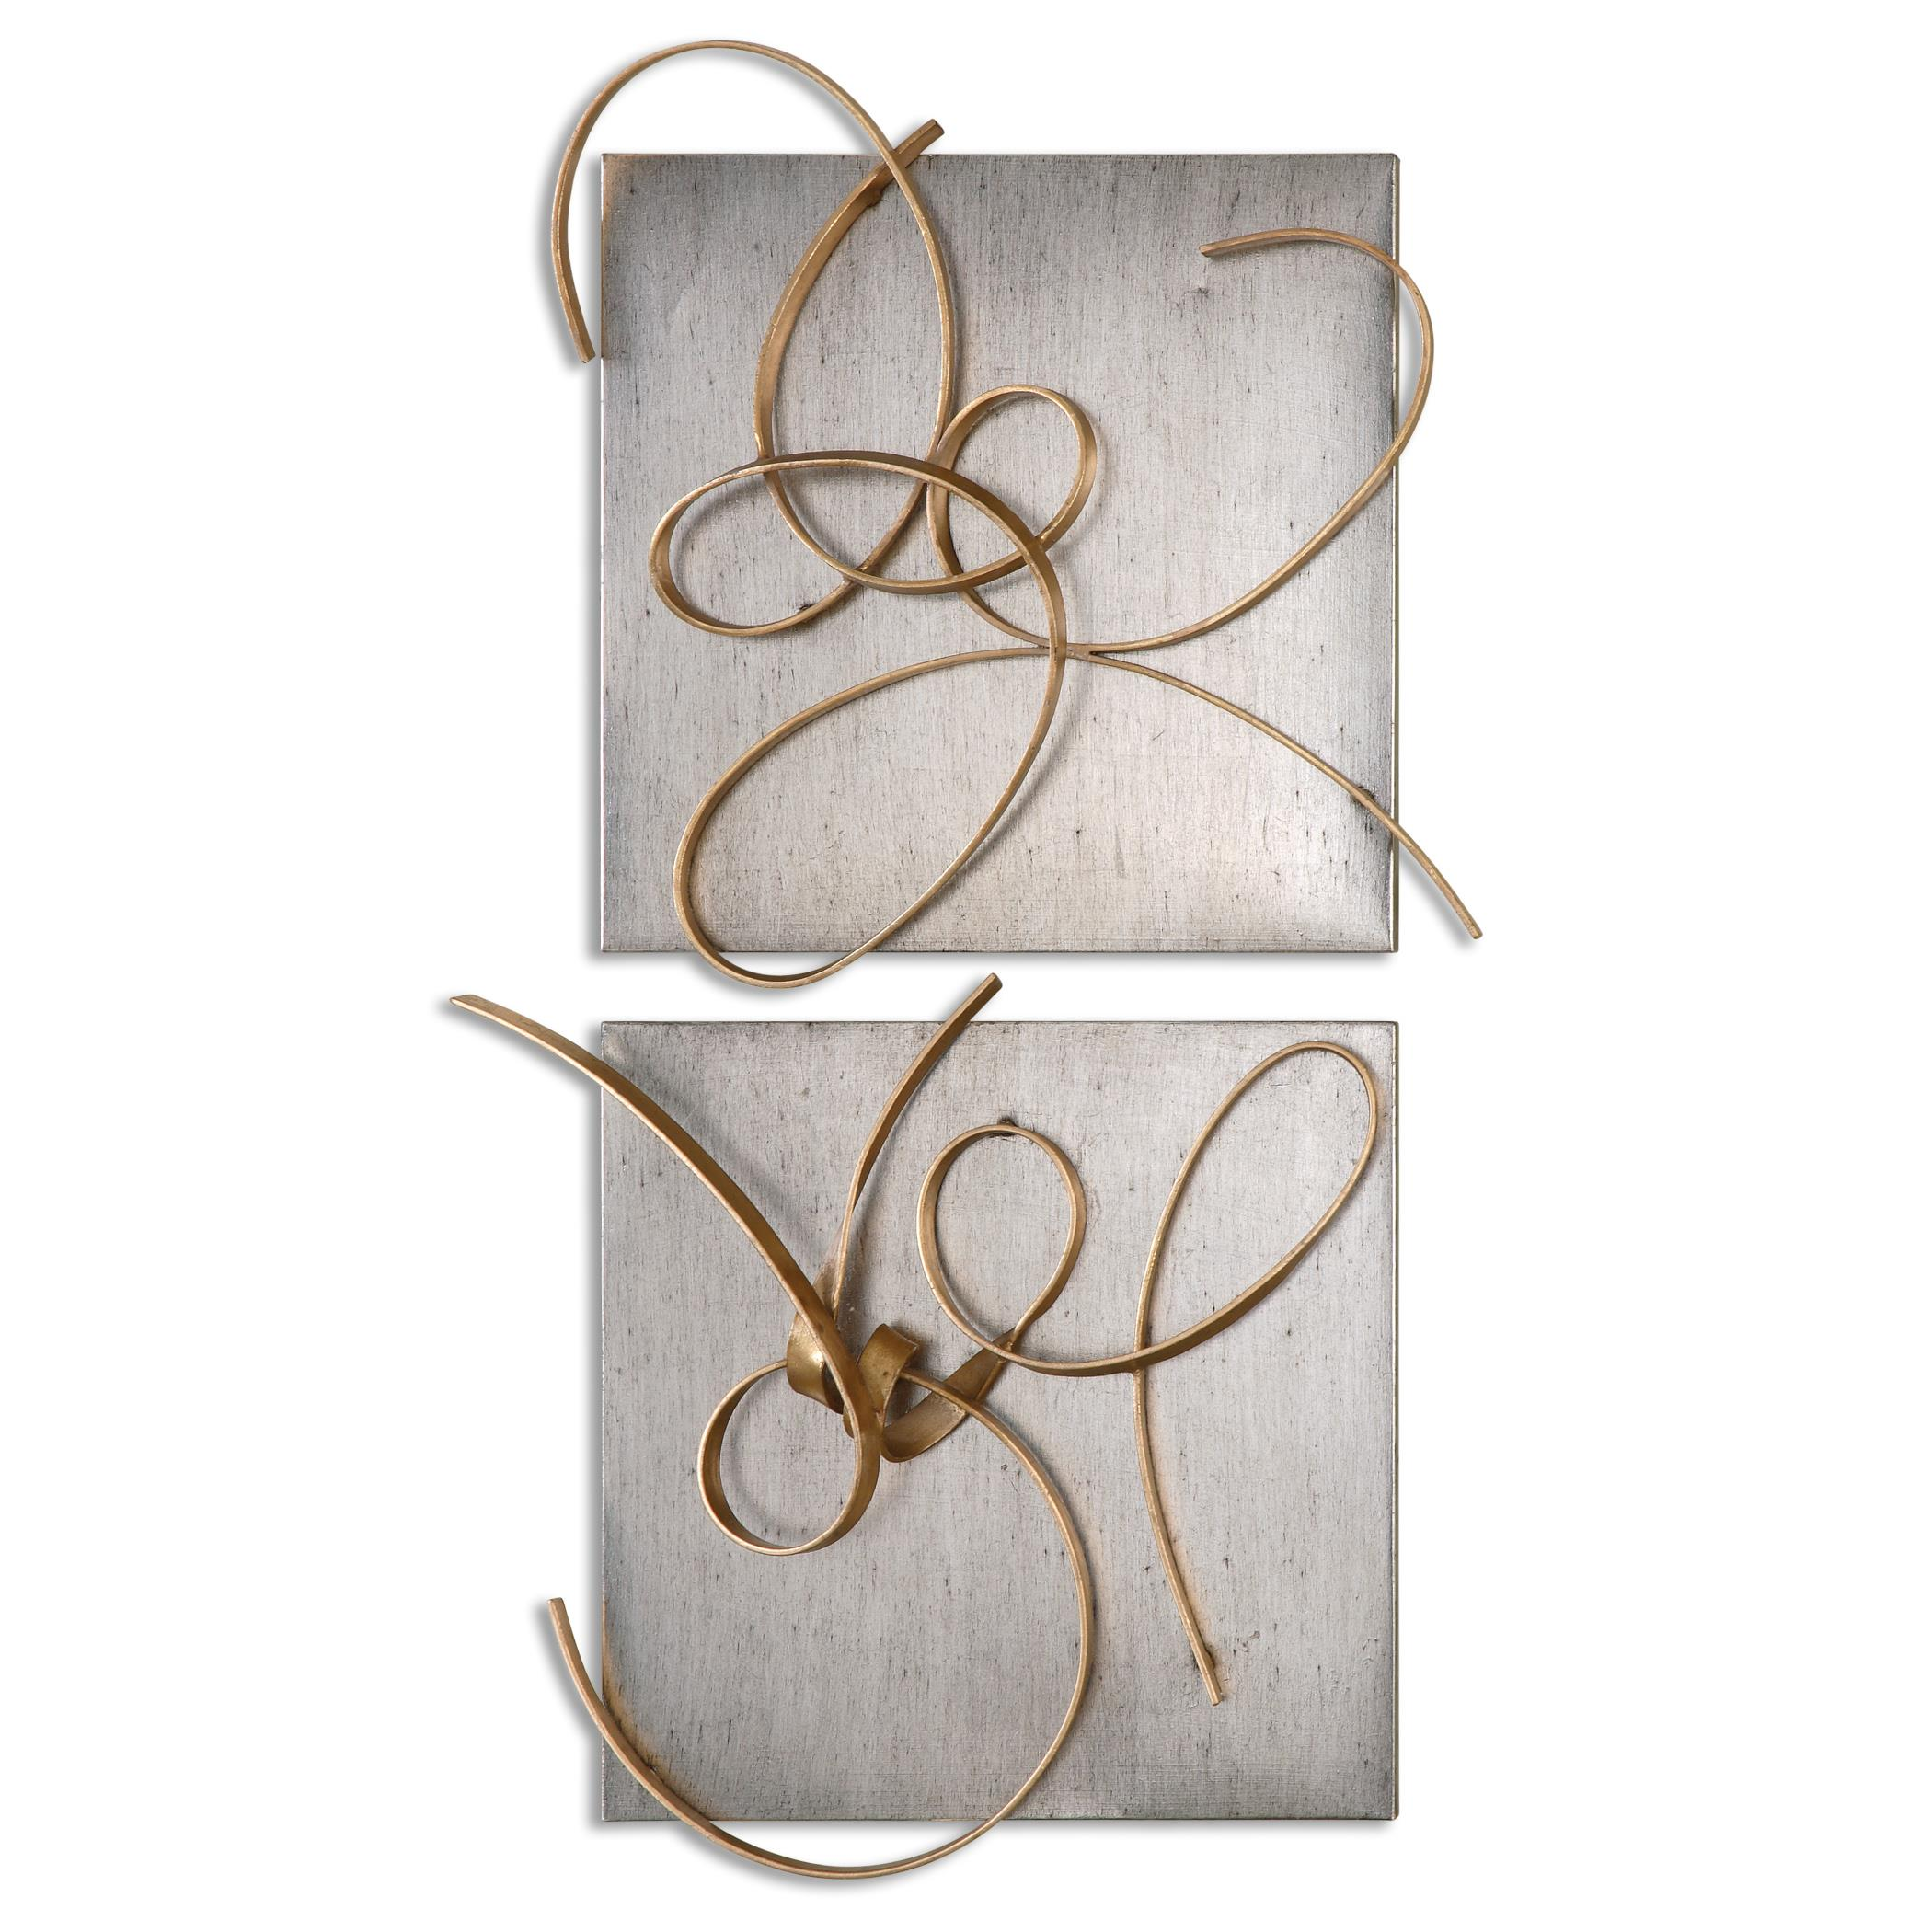 Uttermost Alternative Wall Decor Harmony Metal Wall Art, S/2 - Item Number: 07071